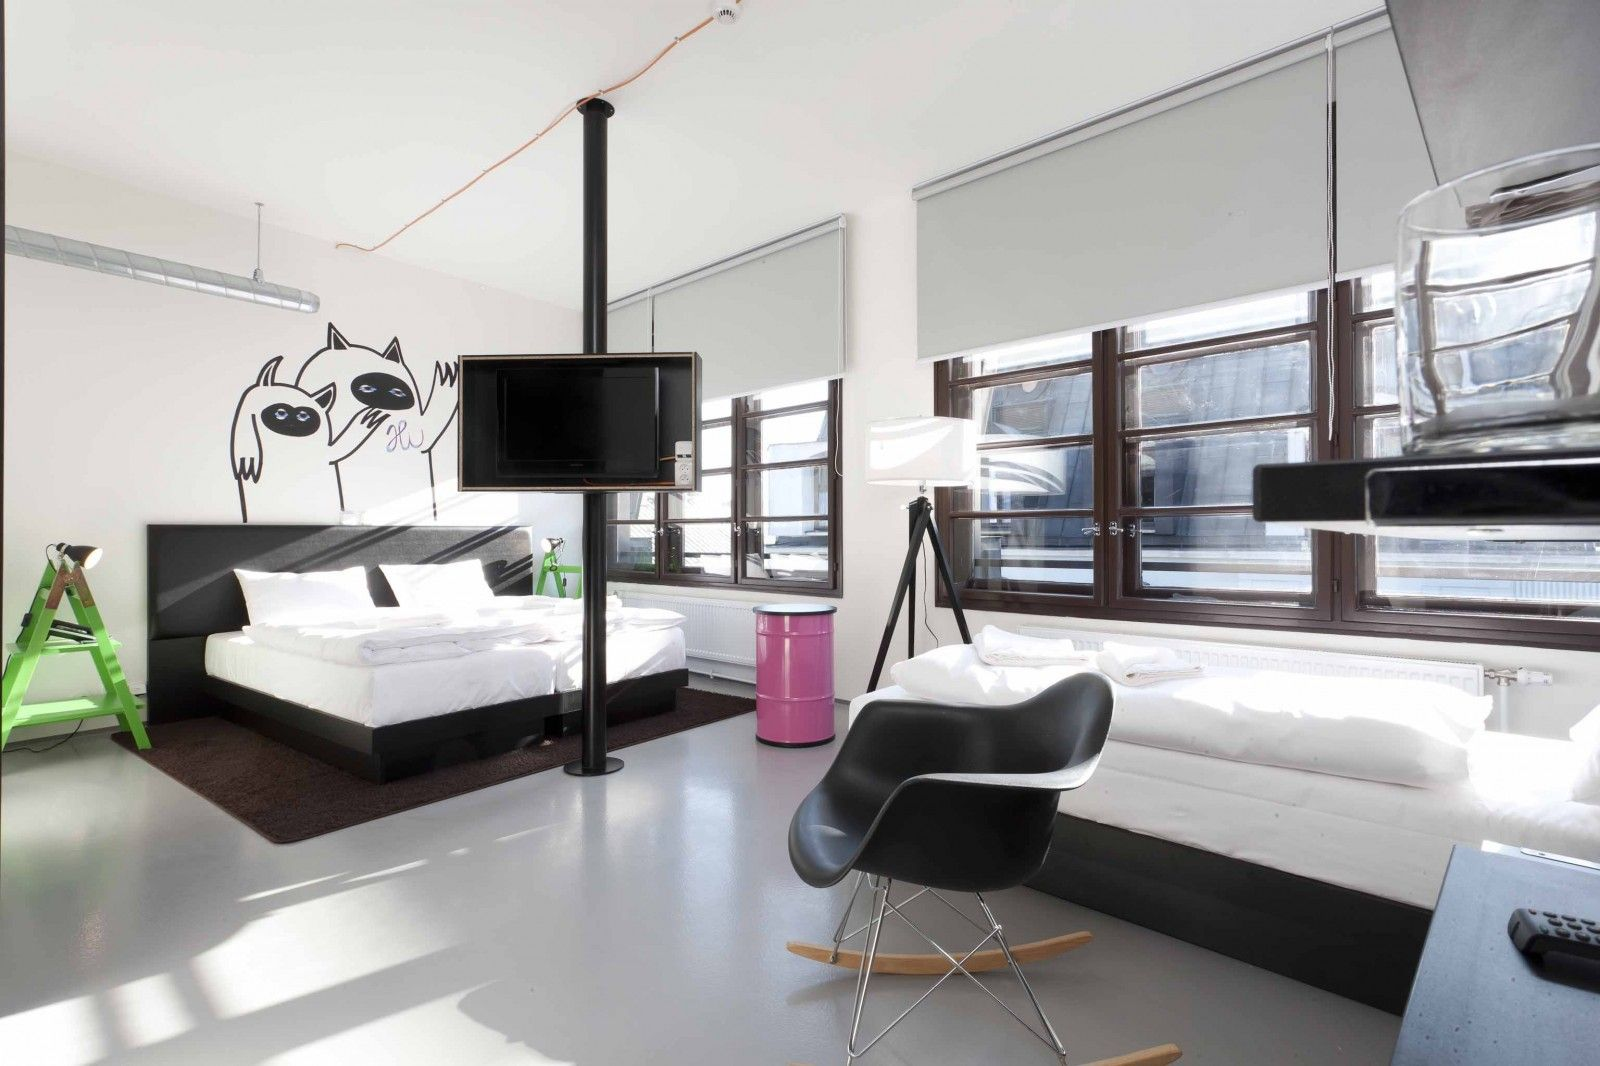 fusion hotel – Comfy Triple Room | Travel ✈ | Pinterest